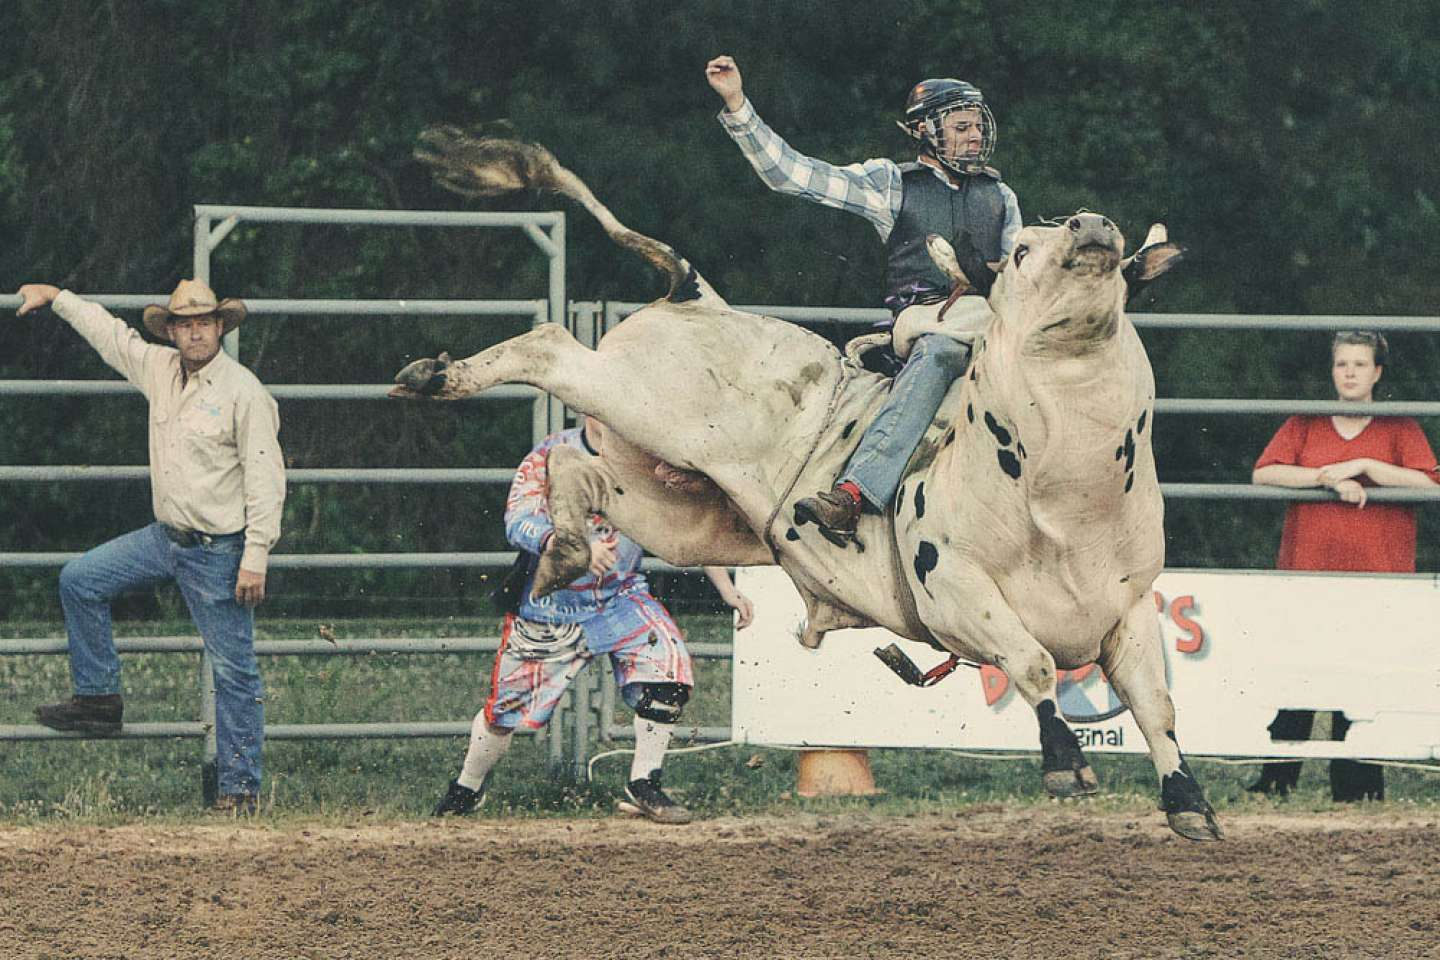 Carousel Farms Rodeo 2014 bull riding and barrel racing